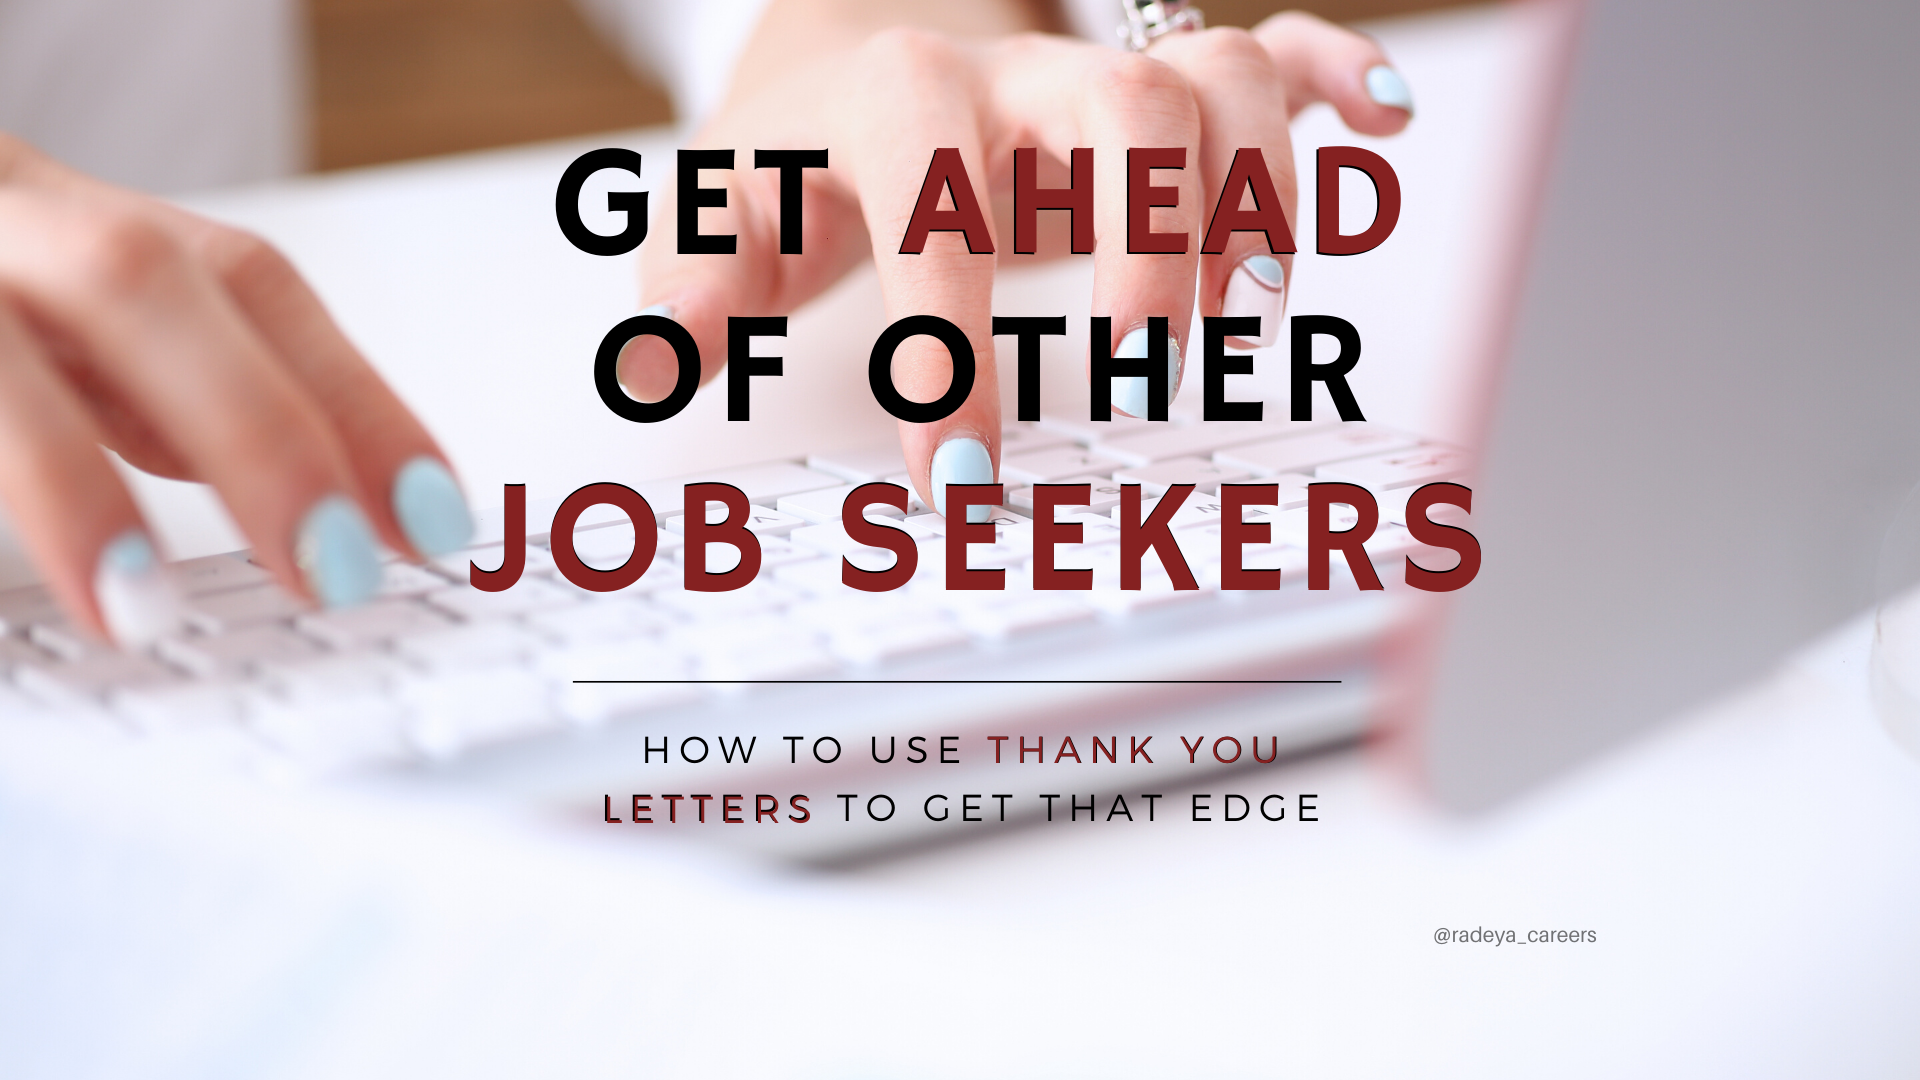 Get ahead of other job seekers with thank you letters